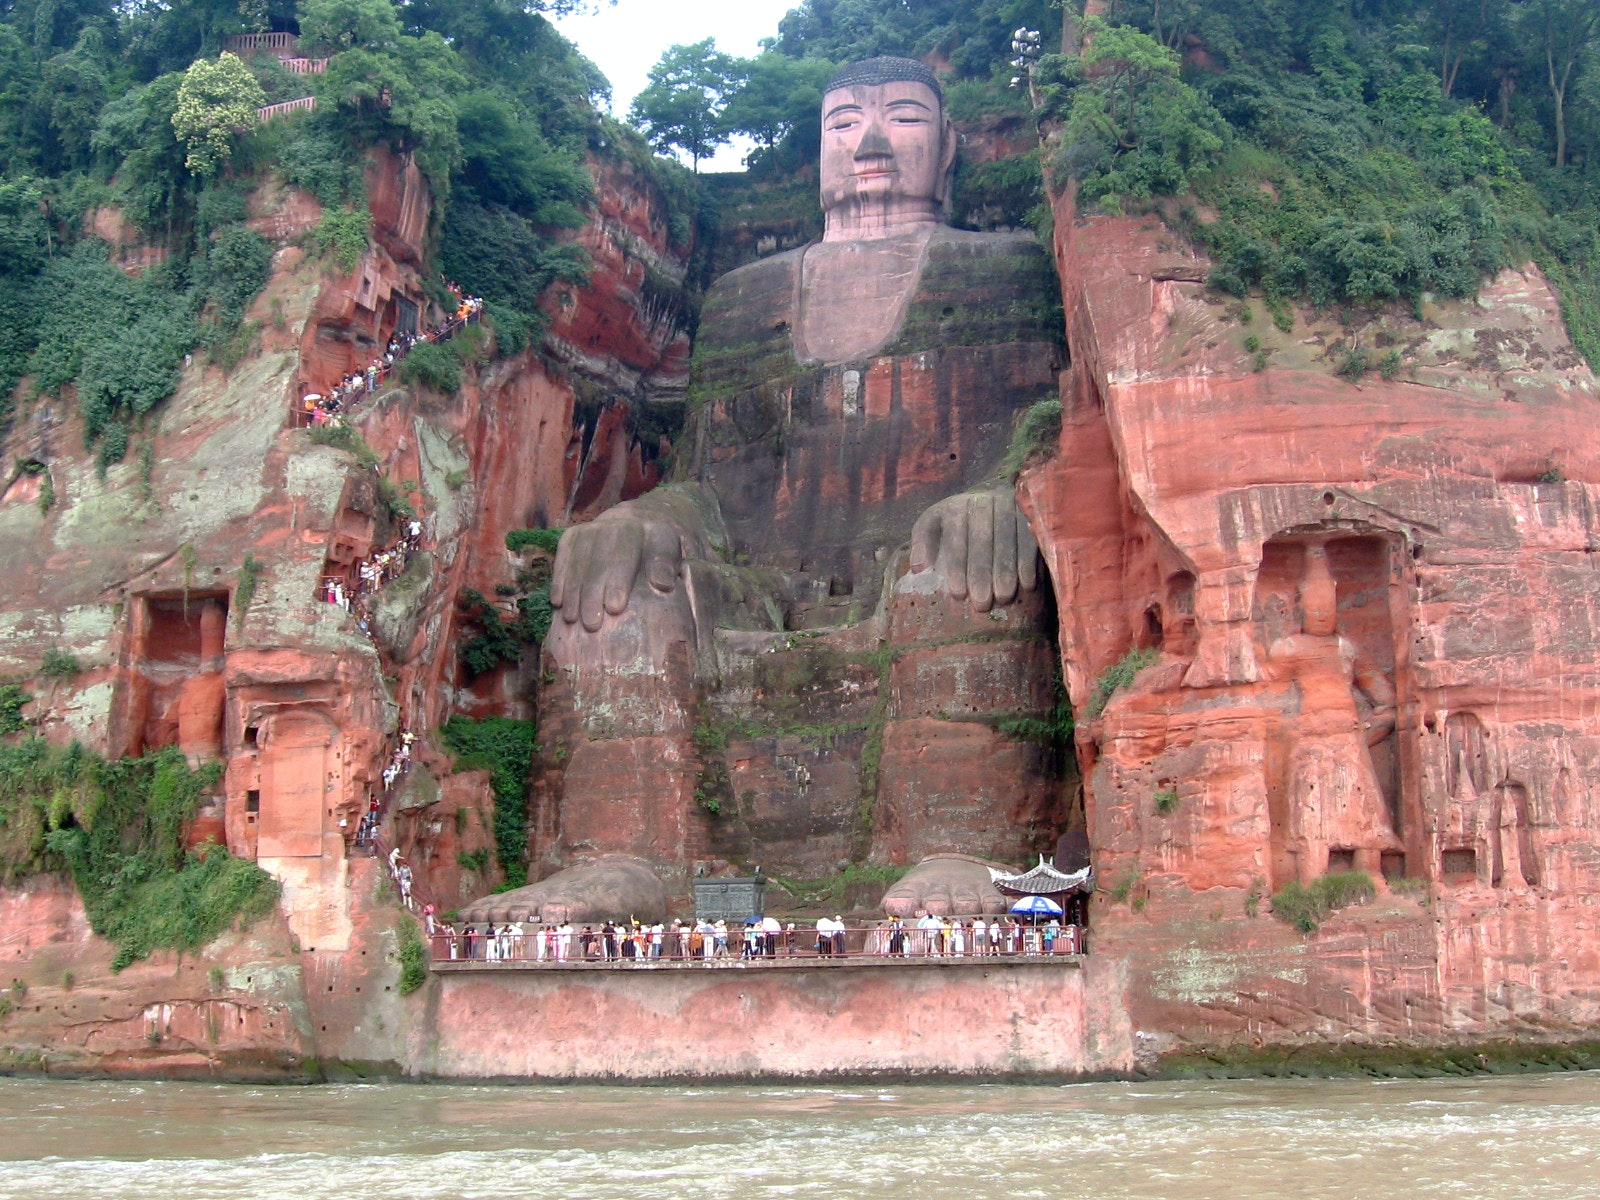 Giant Buddha Statue of Leshan, Sichuan, China. Photo credit: Ariel Steiner/wikipedia, CC BY-SA